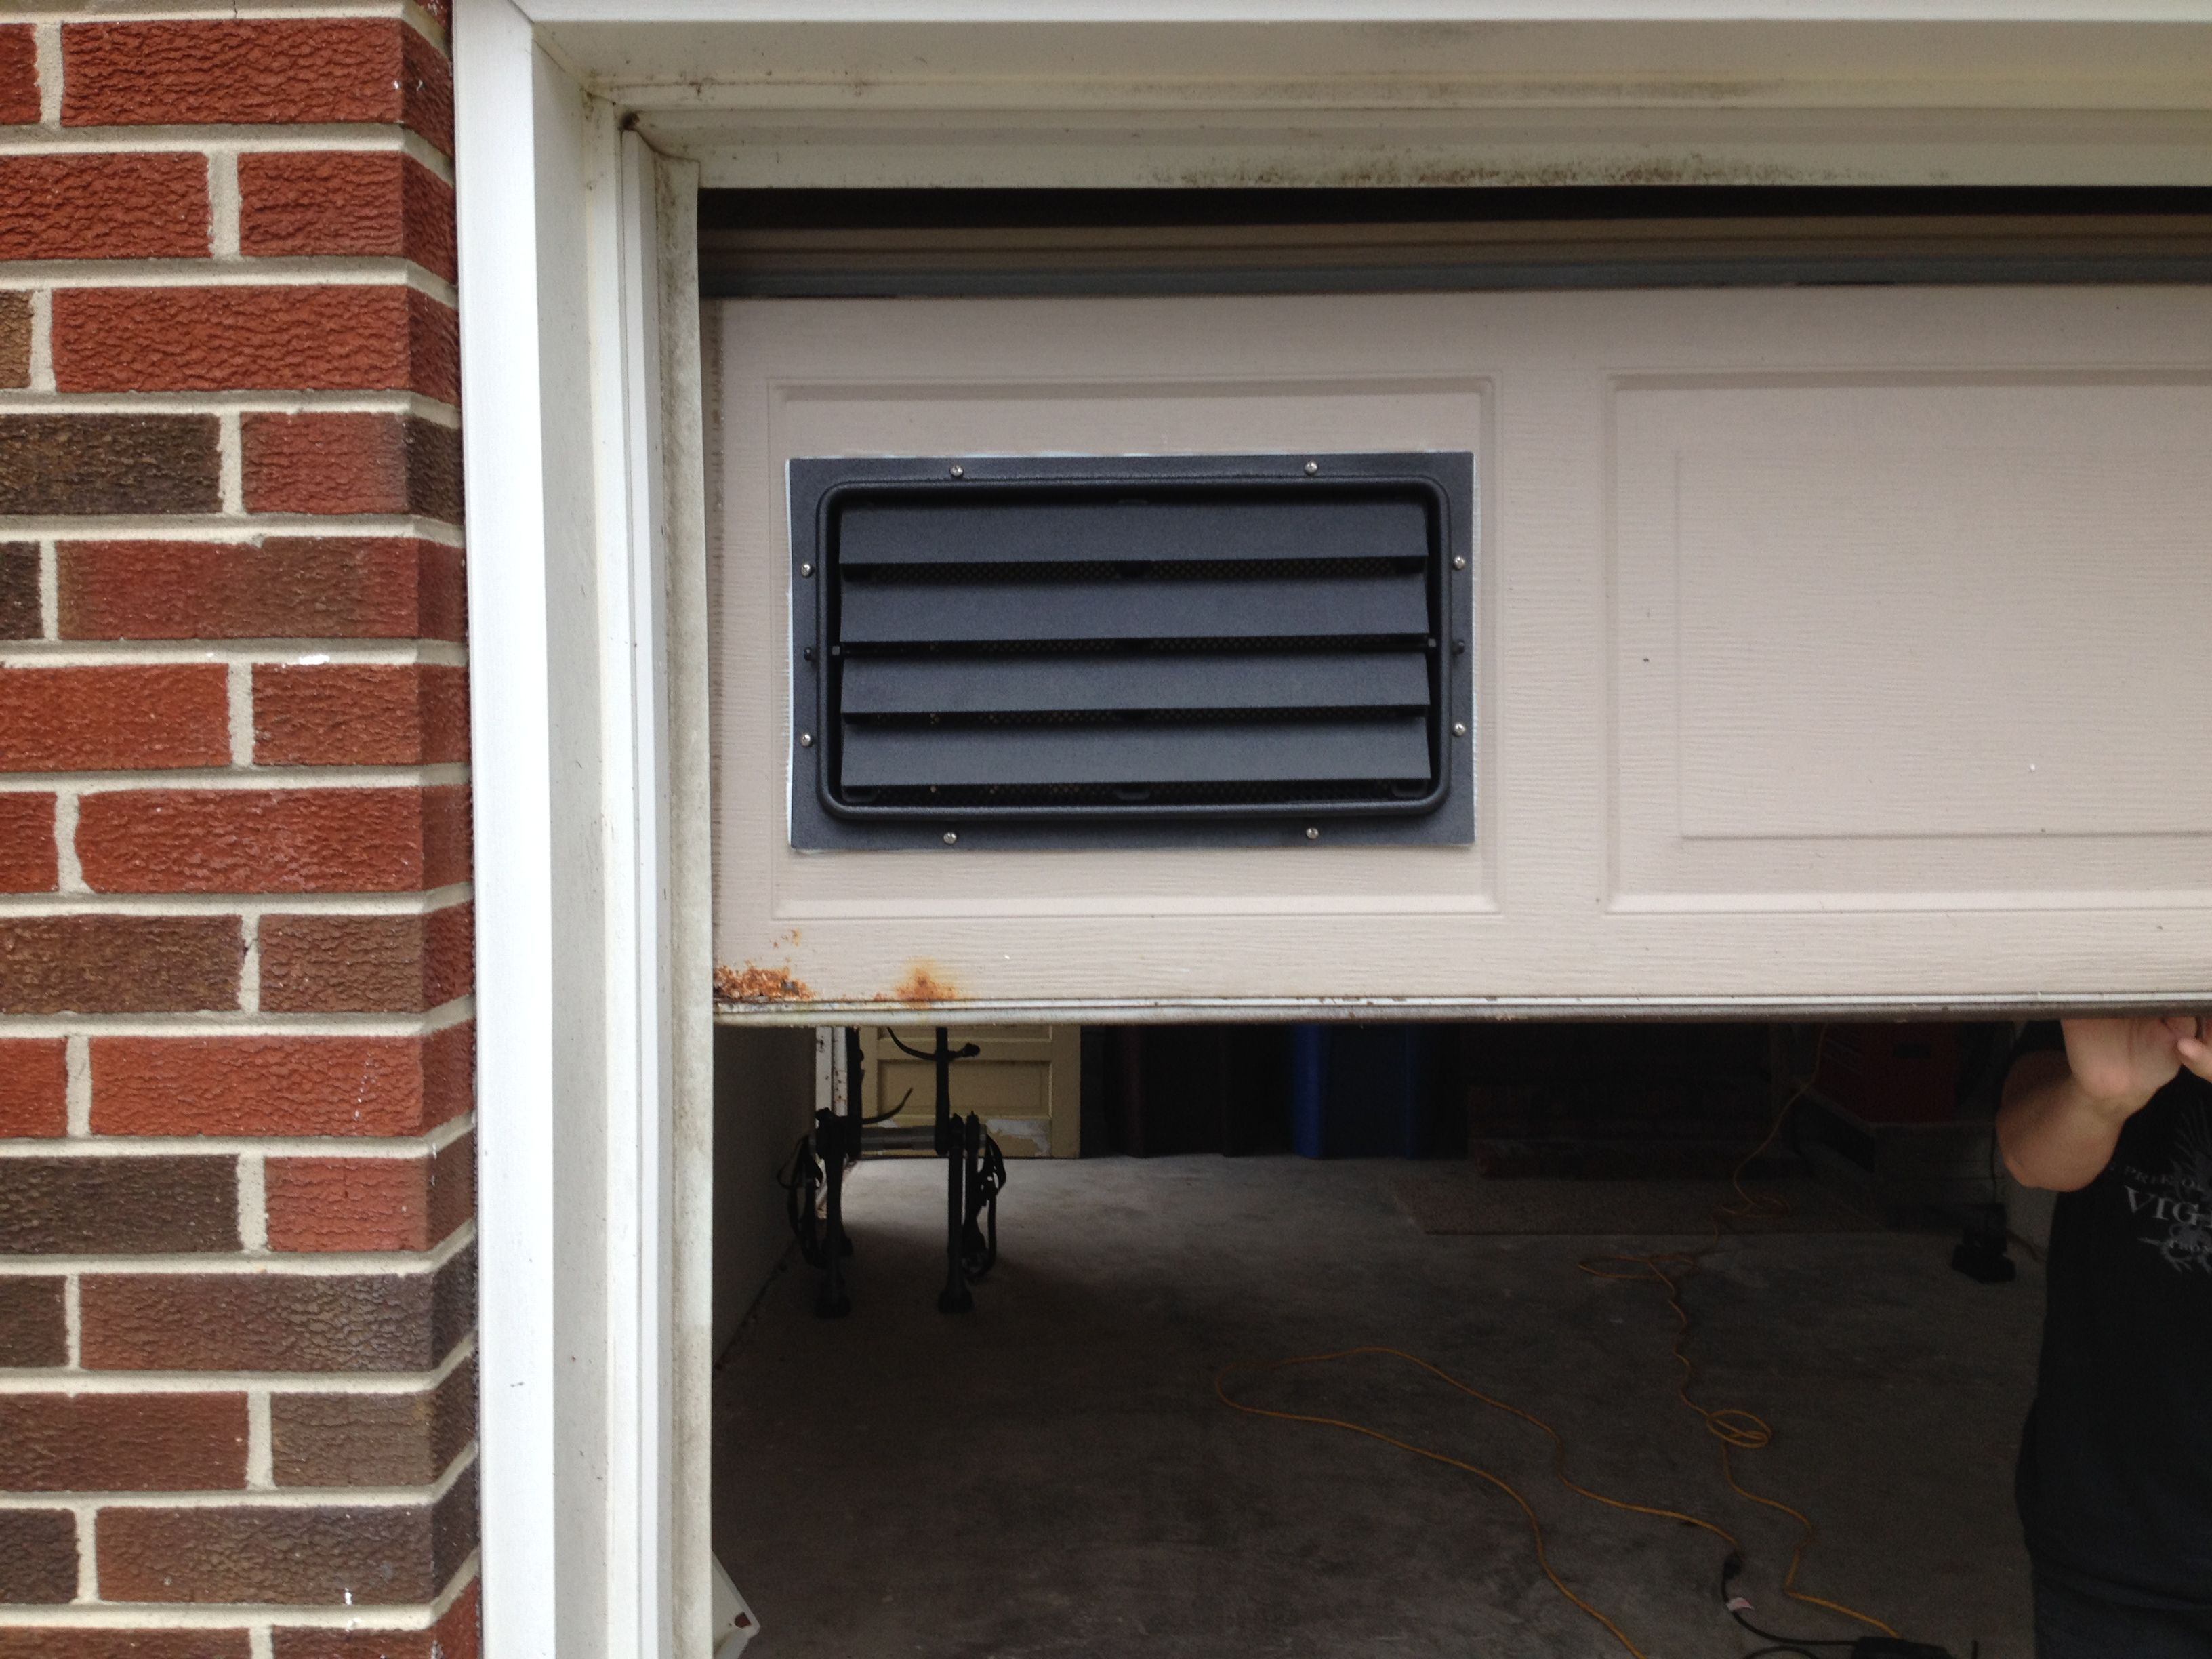 Our 8x16 Engineered Flood Vent With Trim Sleeve Installed In A